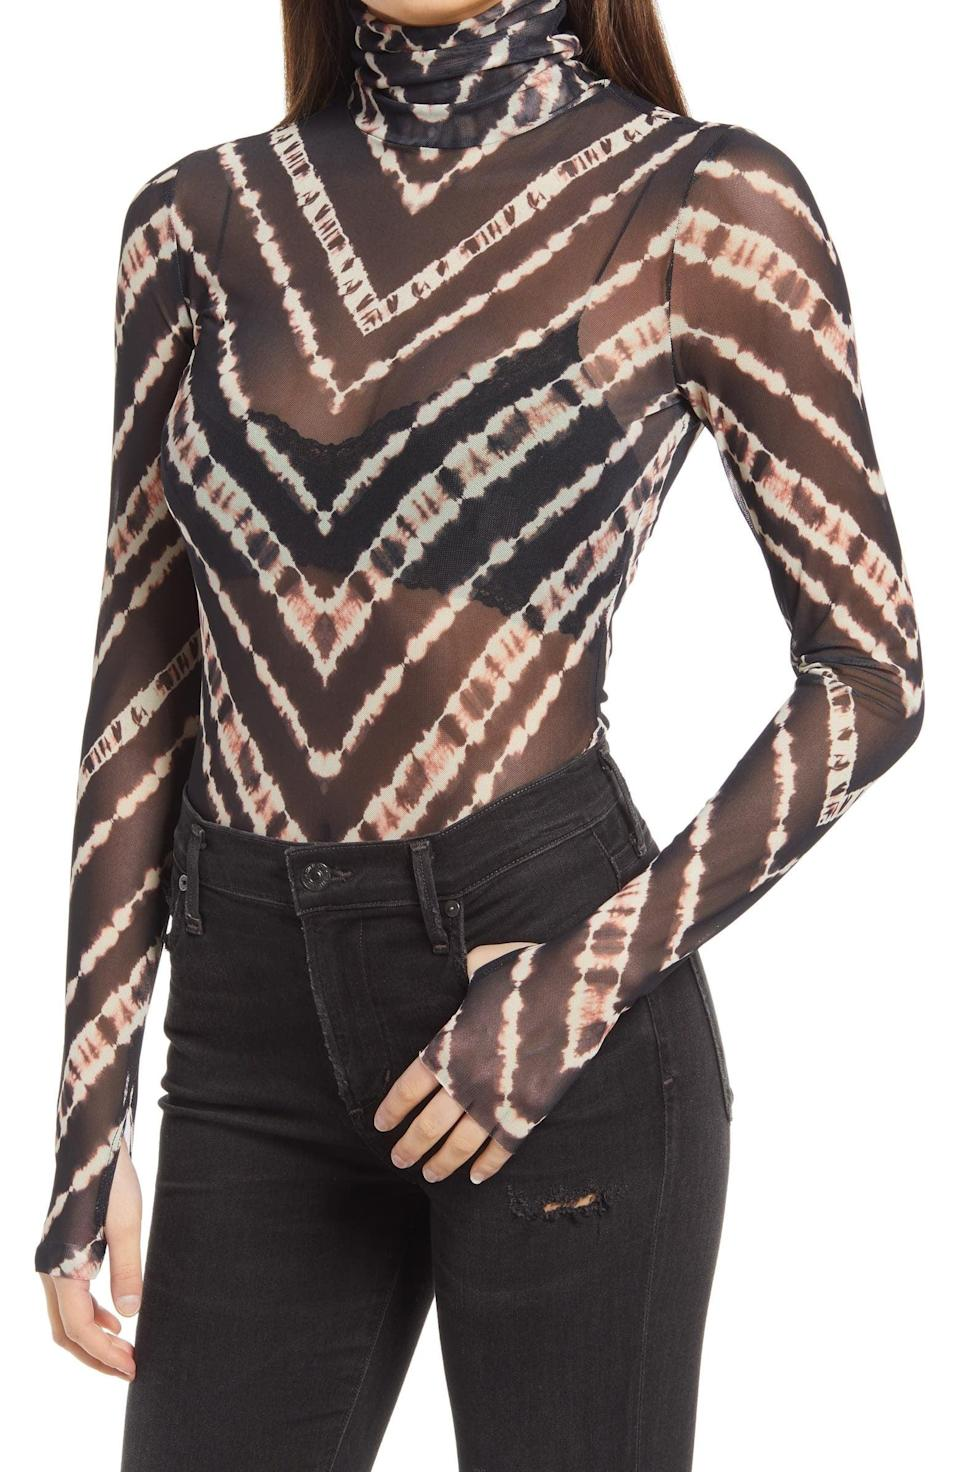 <p>If you like bold patterns, you might want to scoop up this <span>Afrm Zadie Semi Sheer Turtleneck</span> ($38).</p>